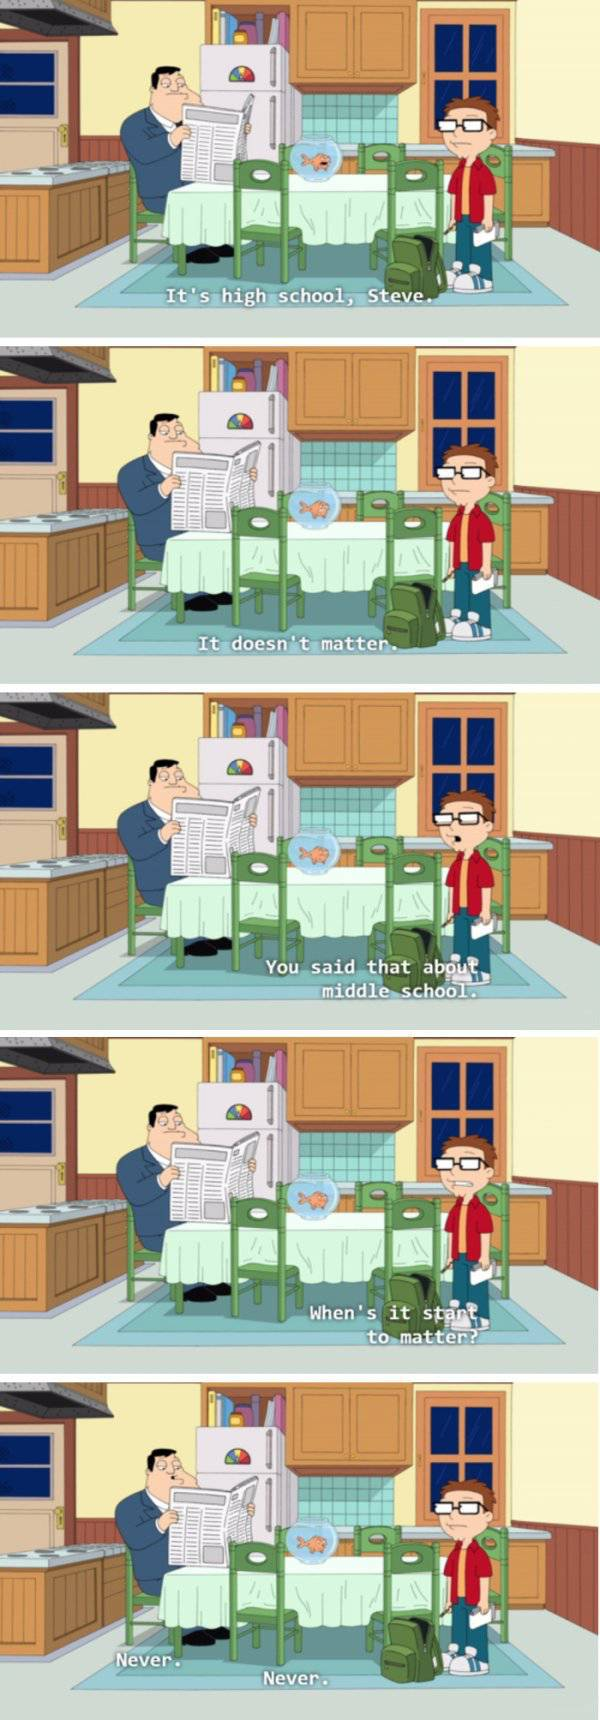 American Dad Jokes Are The Perfect Kind Of Sick Humor